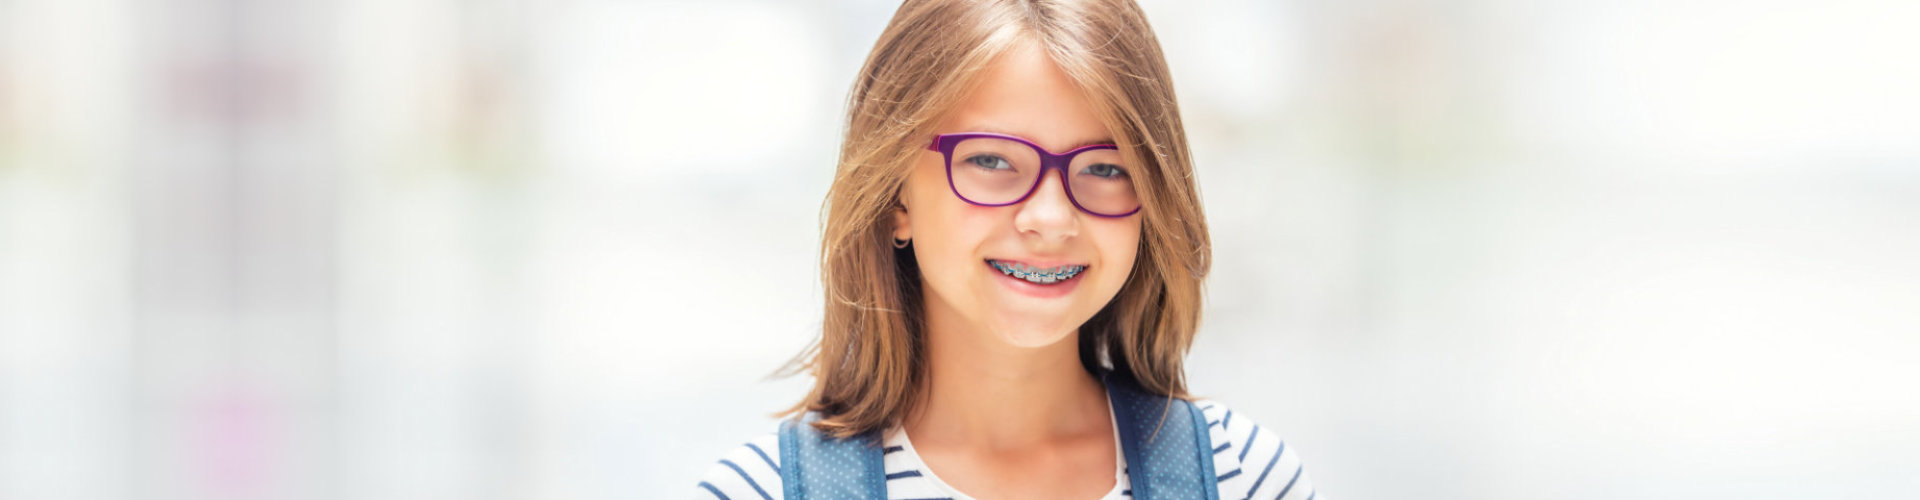 smiling girl wearing eye glasses